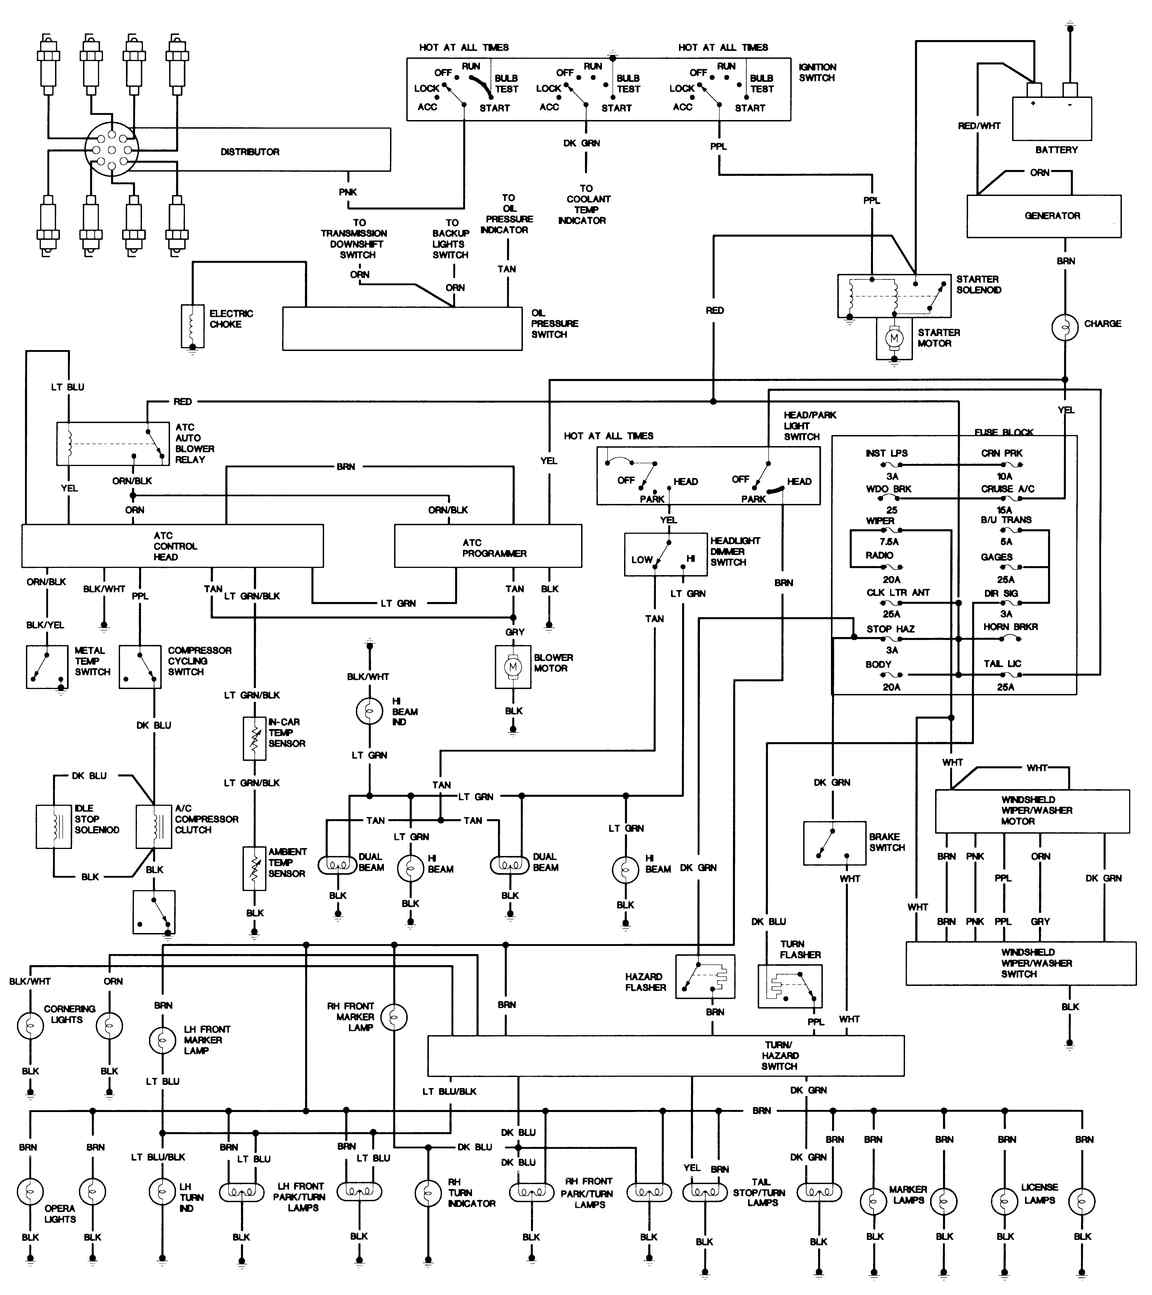 basic ignition wiring diagram 02 deville looking for wiring diagrams for a/c from compressor basic ignition wiring diagram 1200 cc harley #4